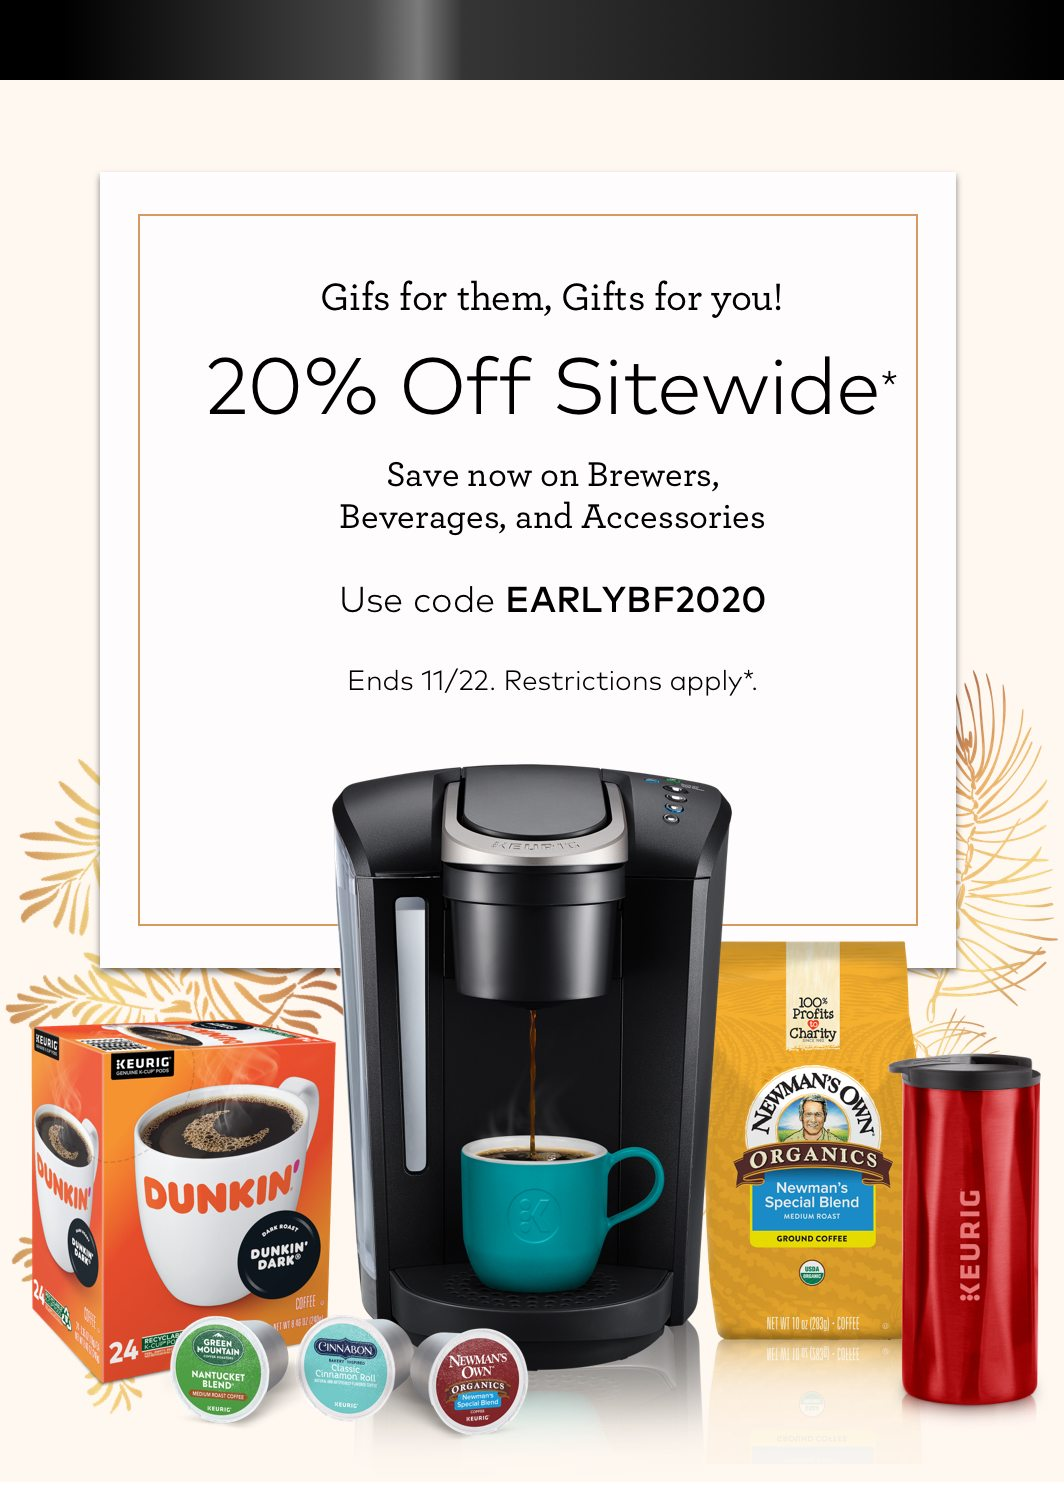 20% off Sitewide with EARLYBF2020